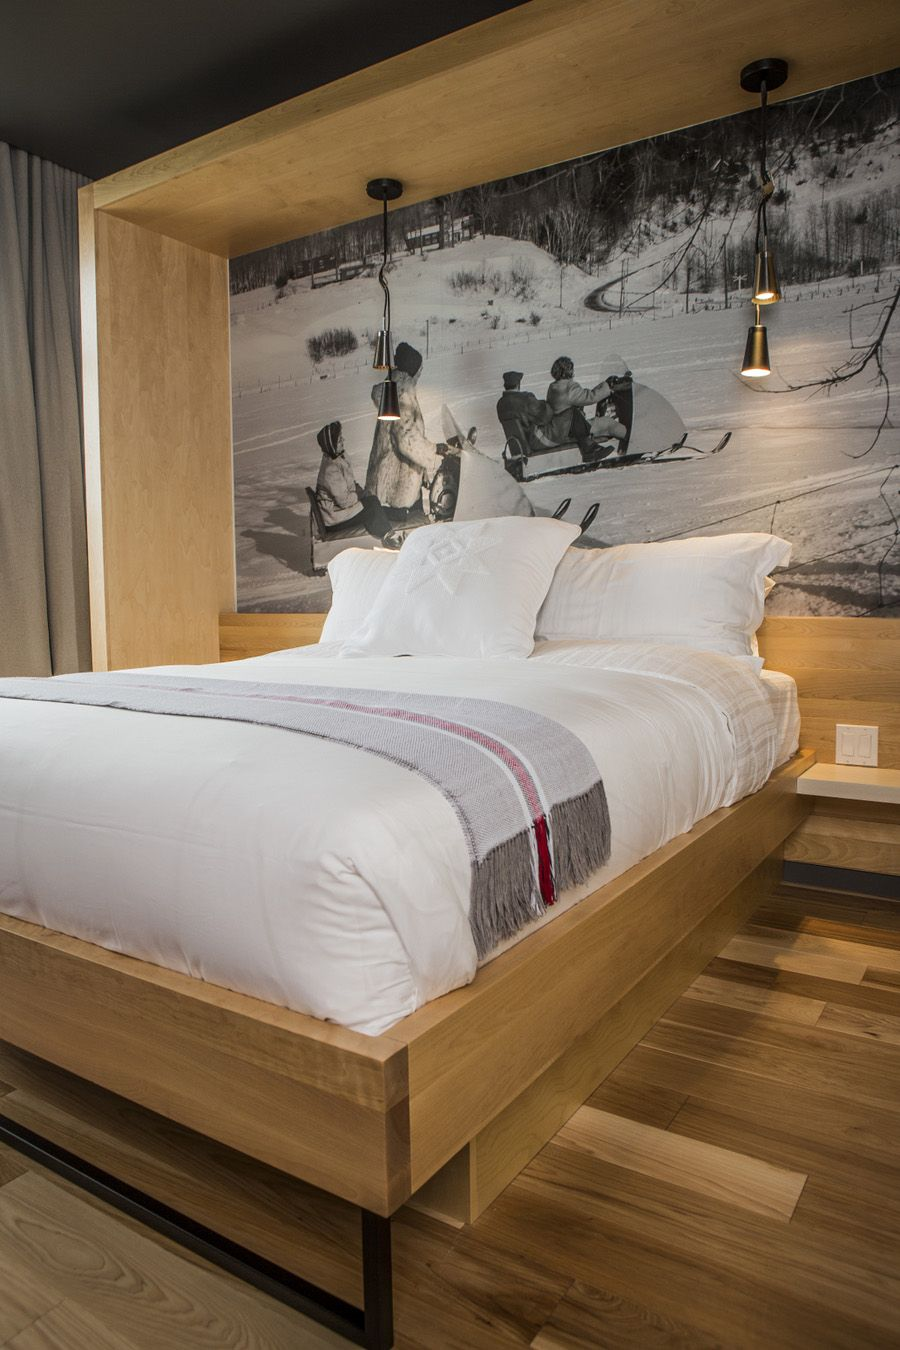 LEMAYMICHAUD | Design | Architecture | Interior Design | La Ferme | Hotel | Charlevoix | Le Massif | Hospitality | Room | Suite | Bed | Pillow | Print | Skidoo |